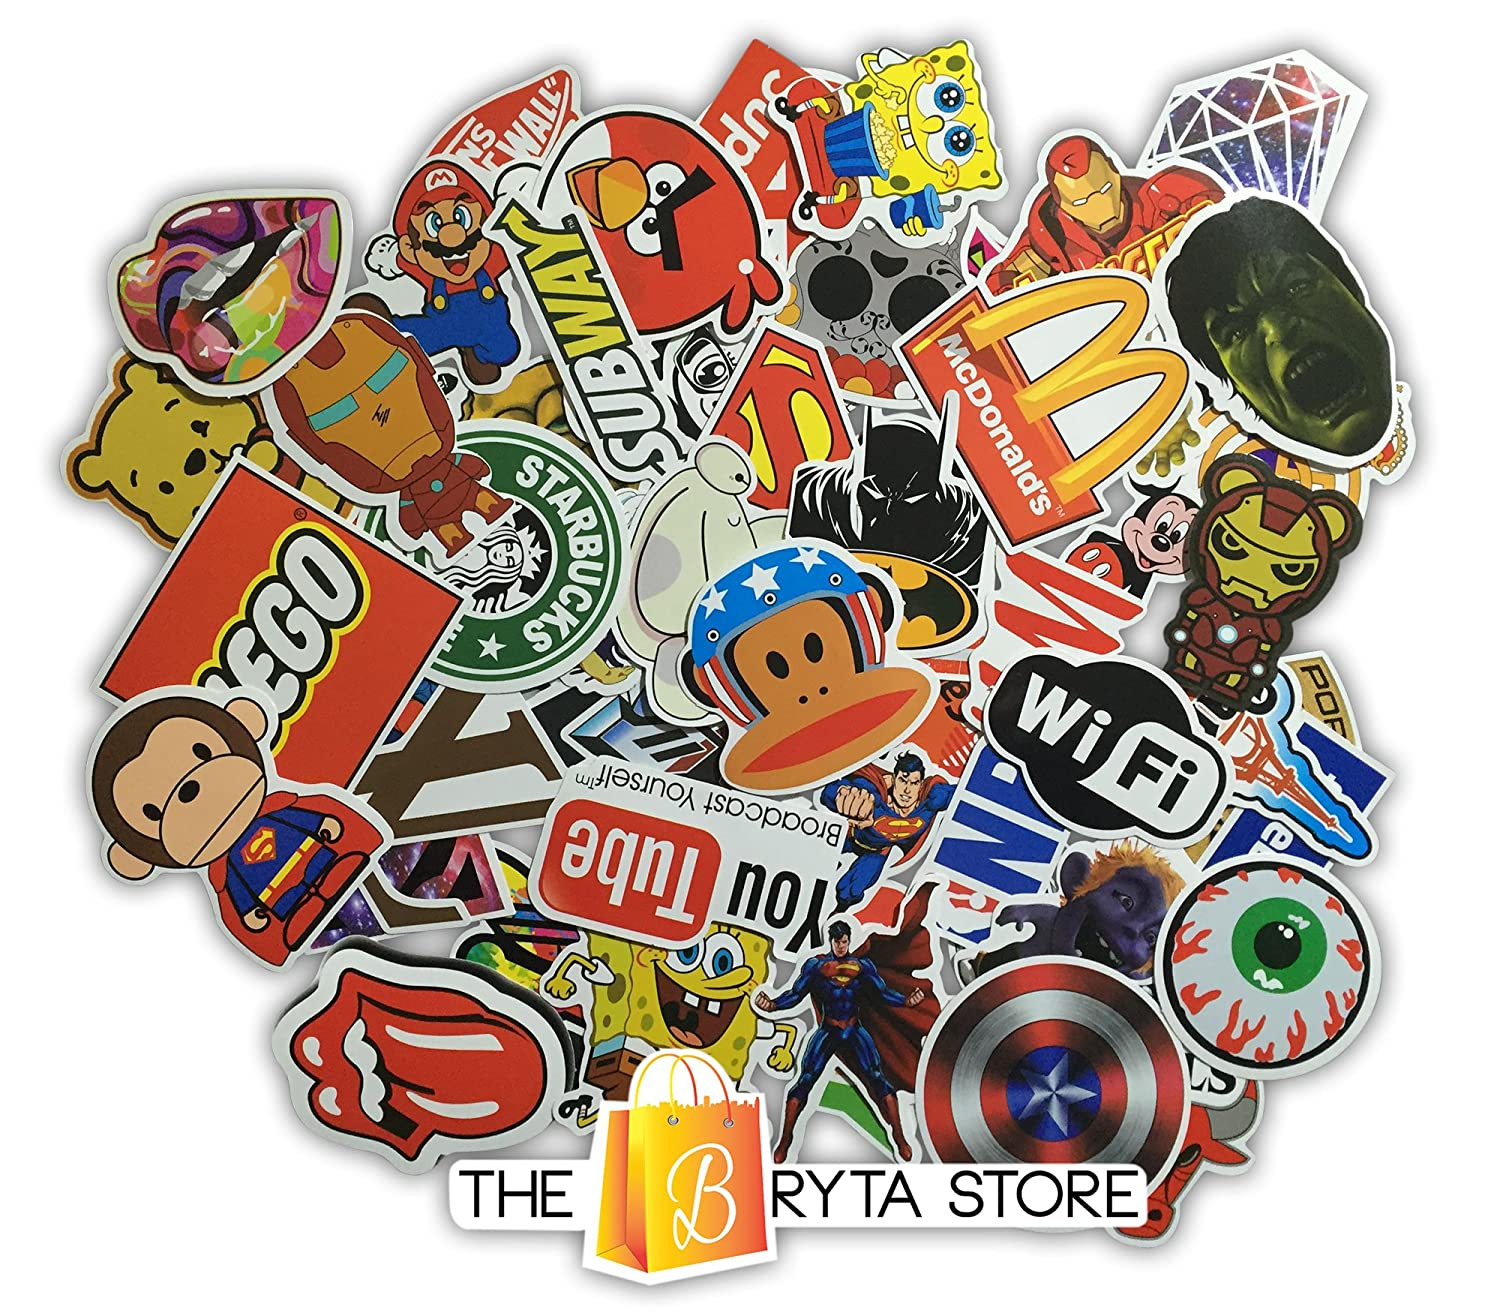 200 PREMIUM Stickers Decals Vinyls Perfect To Graffiti Your Laptop Bumper Pack of The Best Selling Quality Sticker Hard Hat Luggage Bike Car The Bryta Store Skateboard